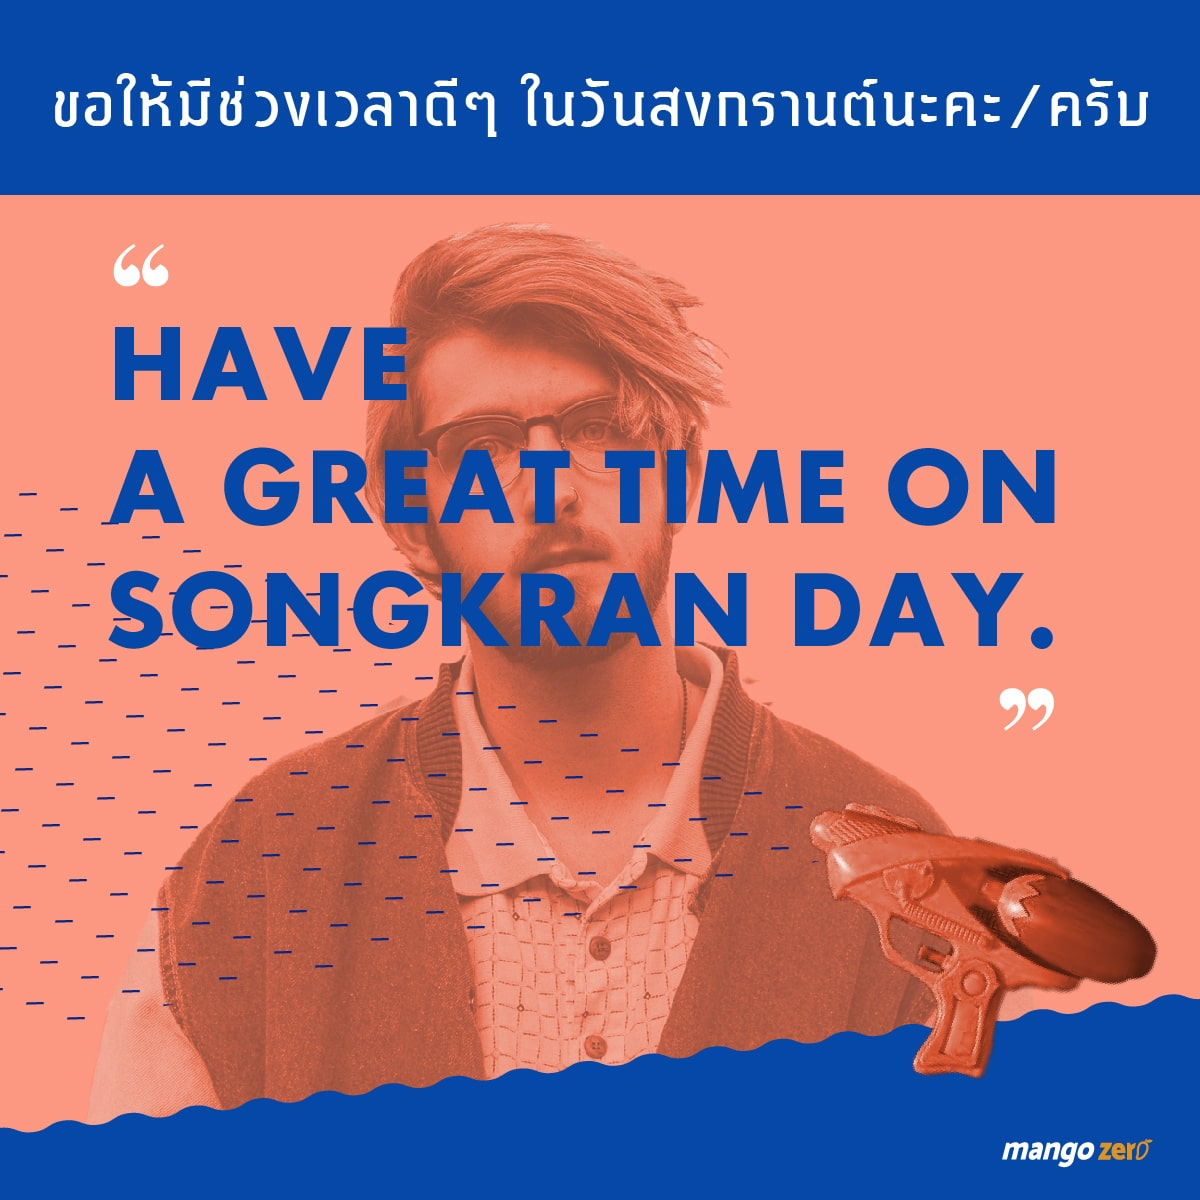 songkran-fest-phrase-english2